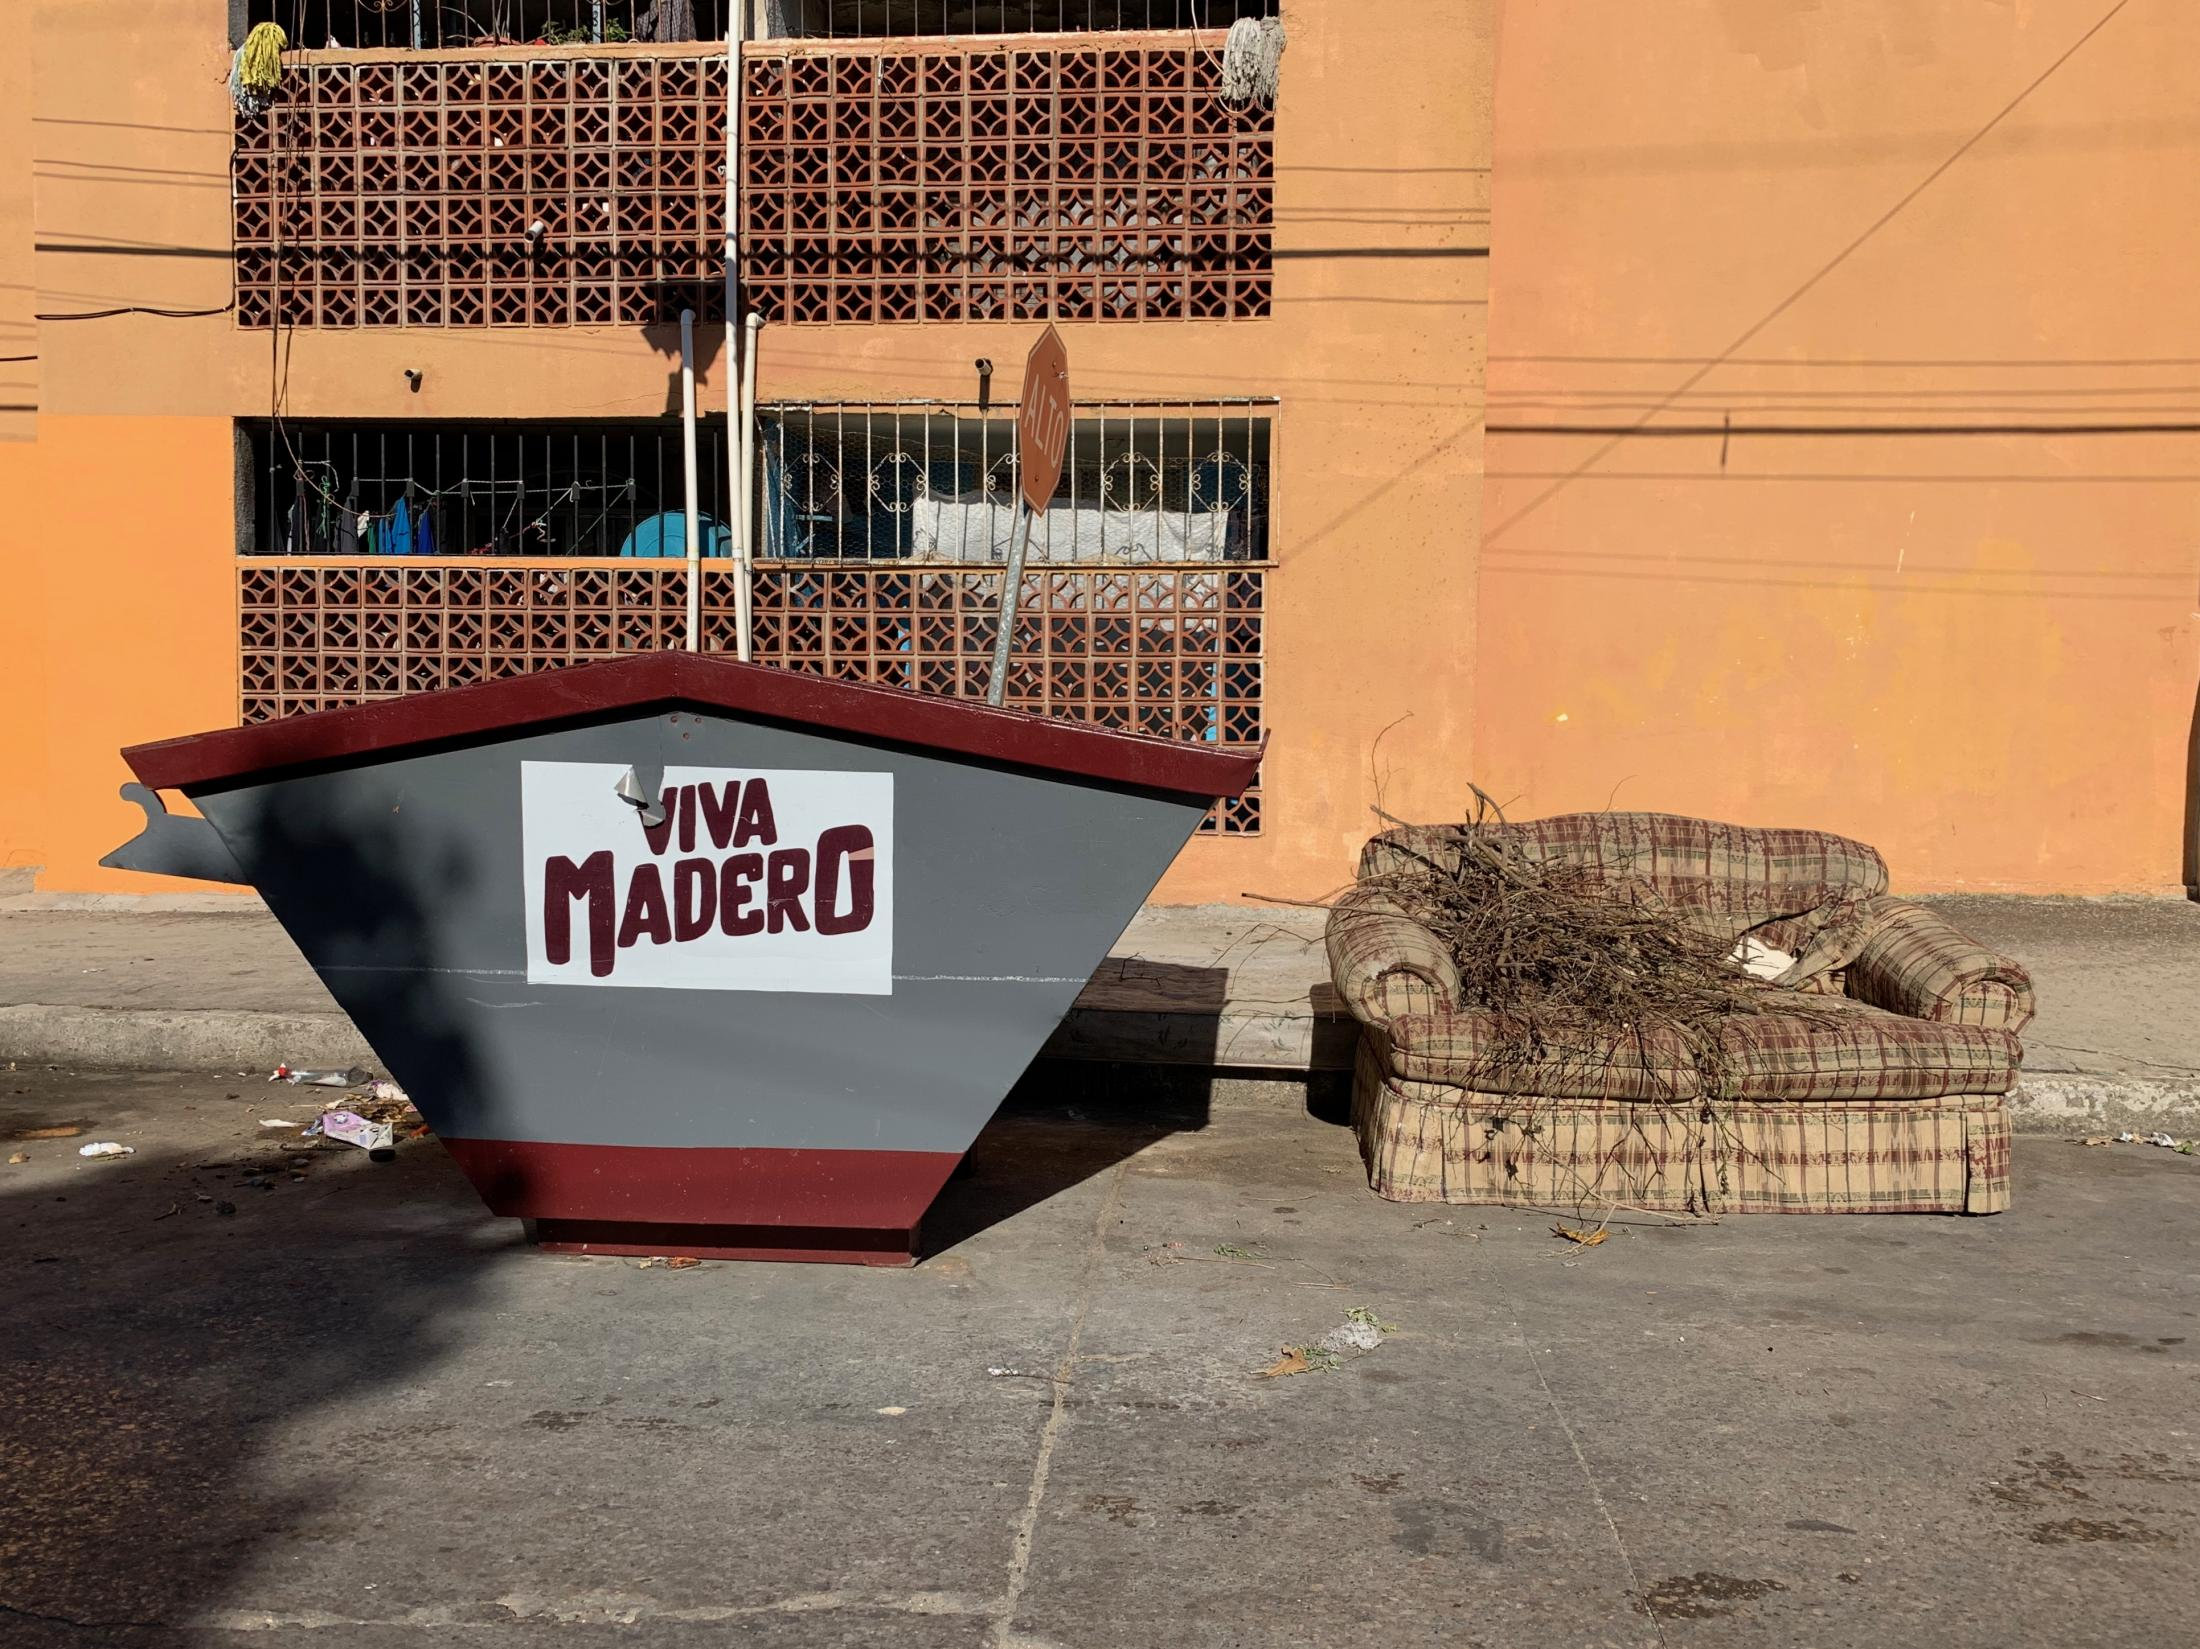 Ciudad Madero, Tamaulipas, México. 2019. A couch with branches and city owned trash container sit together on the corner of a street. Several days later the couch was gone. I was driving around the city with my girlfriend.